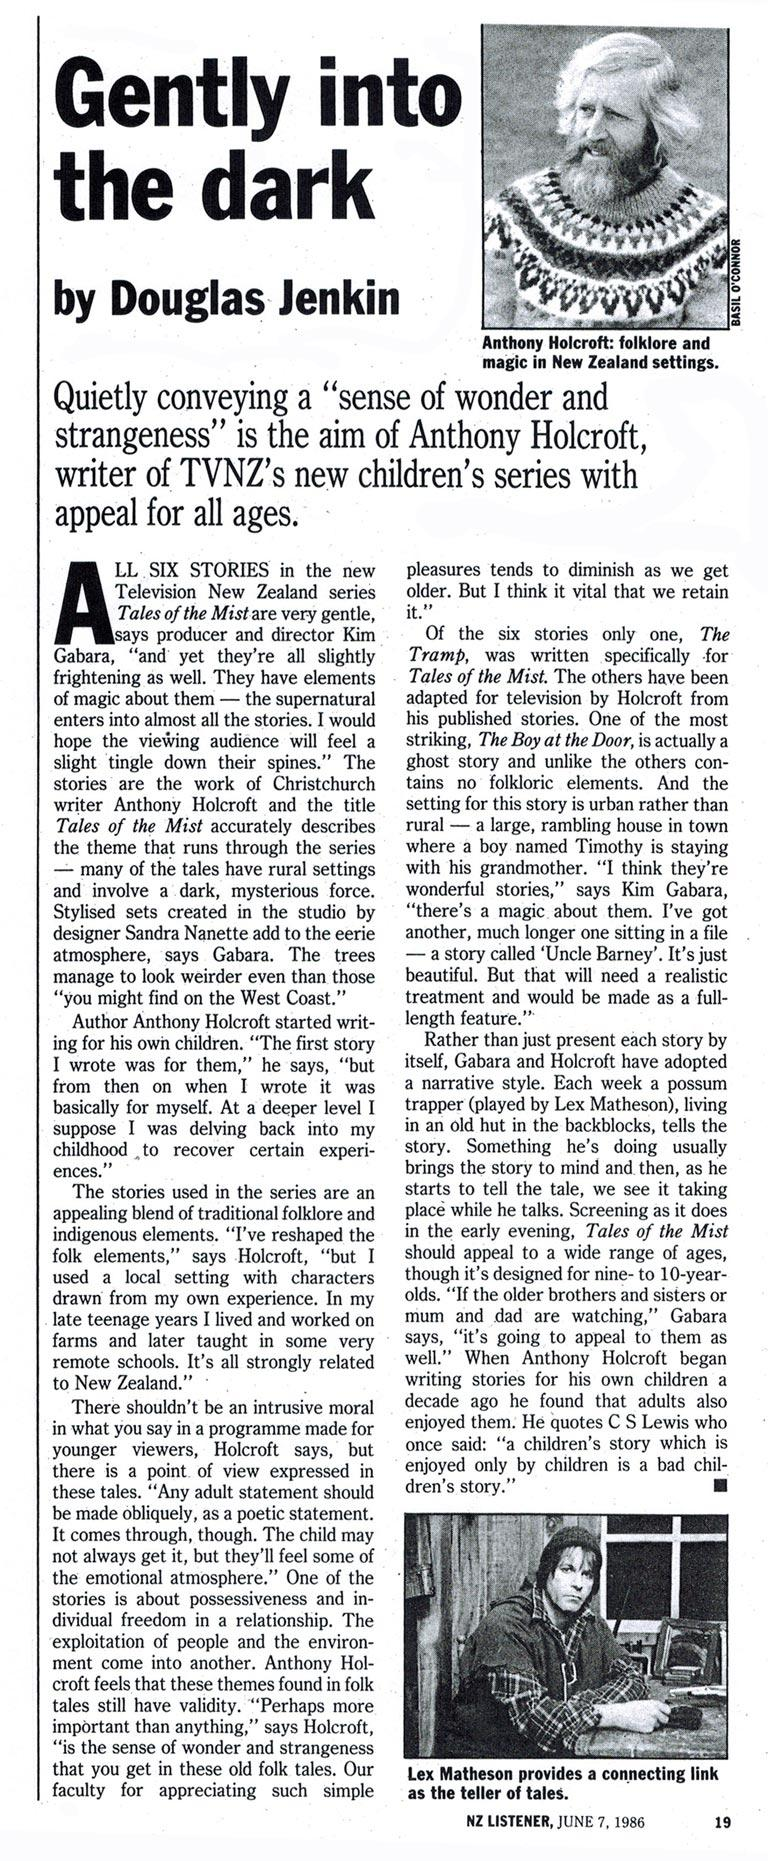 """PDF of a review of """"The Tales of the Mist"""" by Anthony Holcroft, NZ Listener, 1986"""